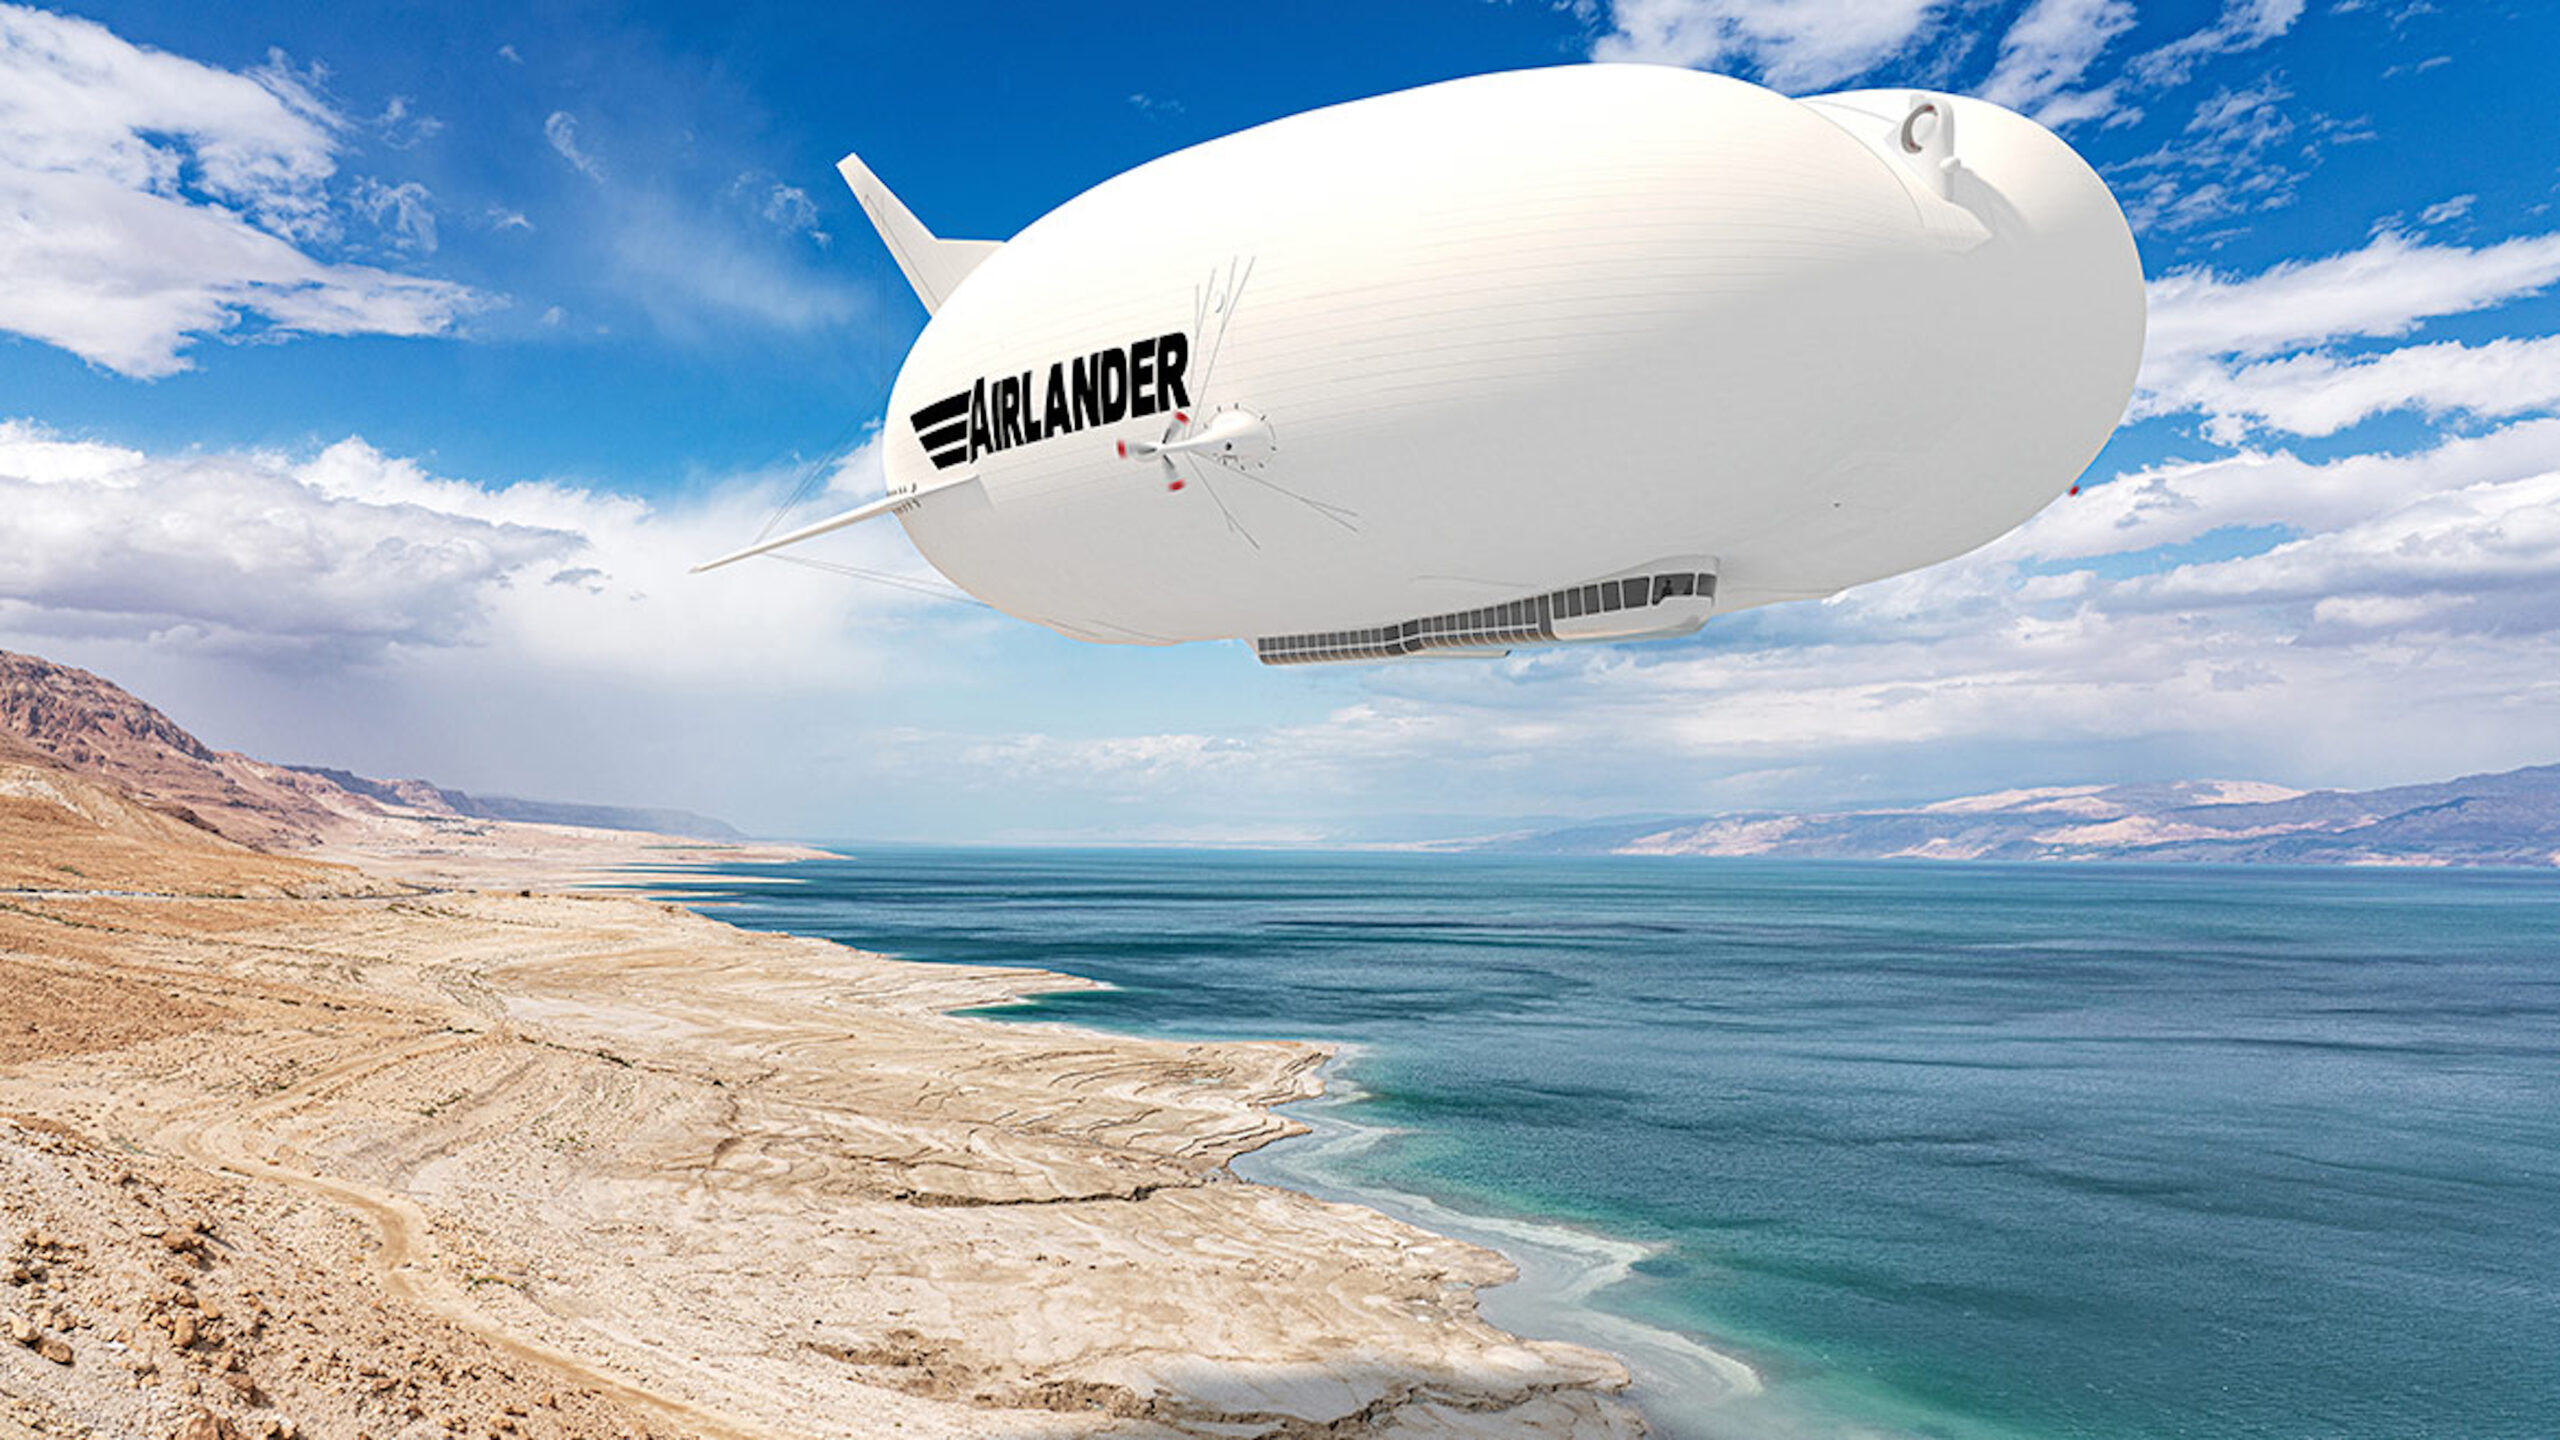 Airlander in the sky